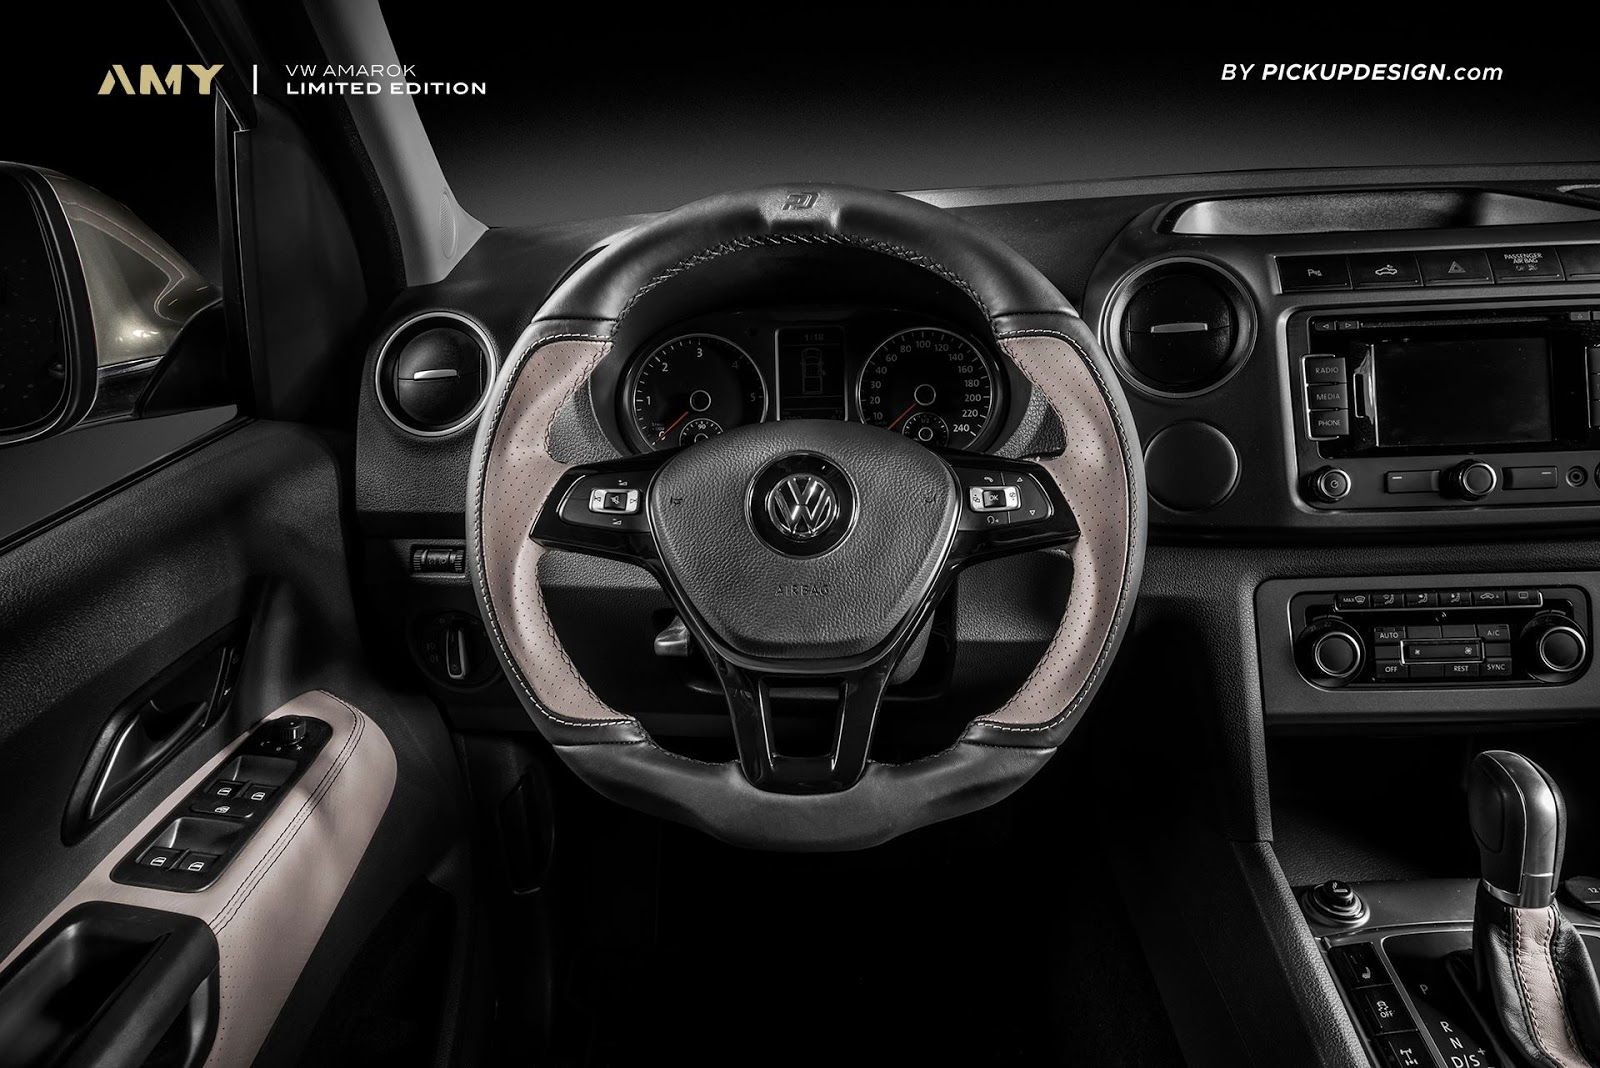 VW-Amarok-Pickup-Design-9